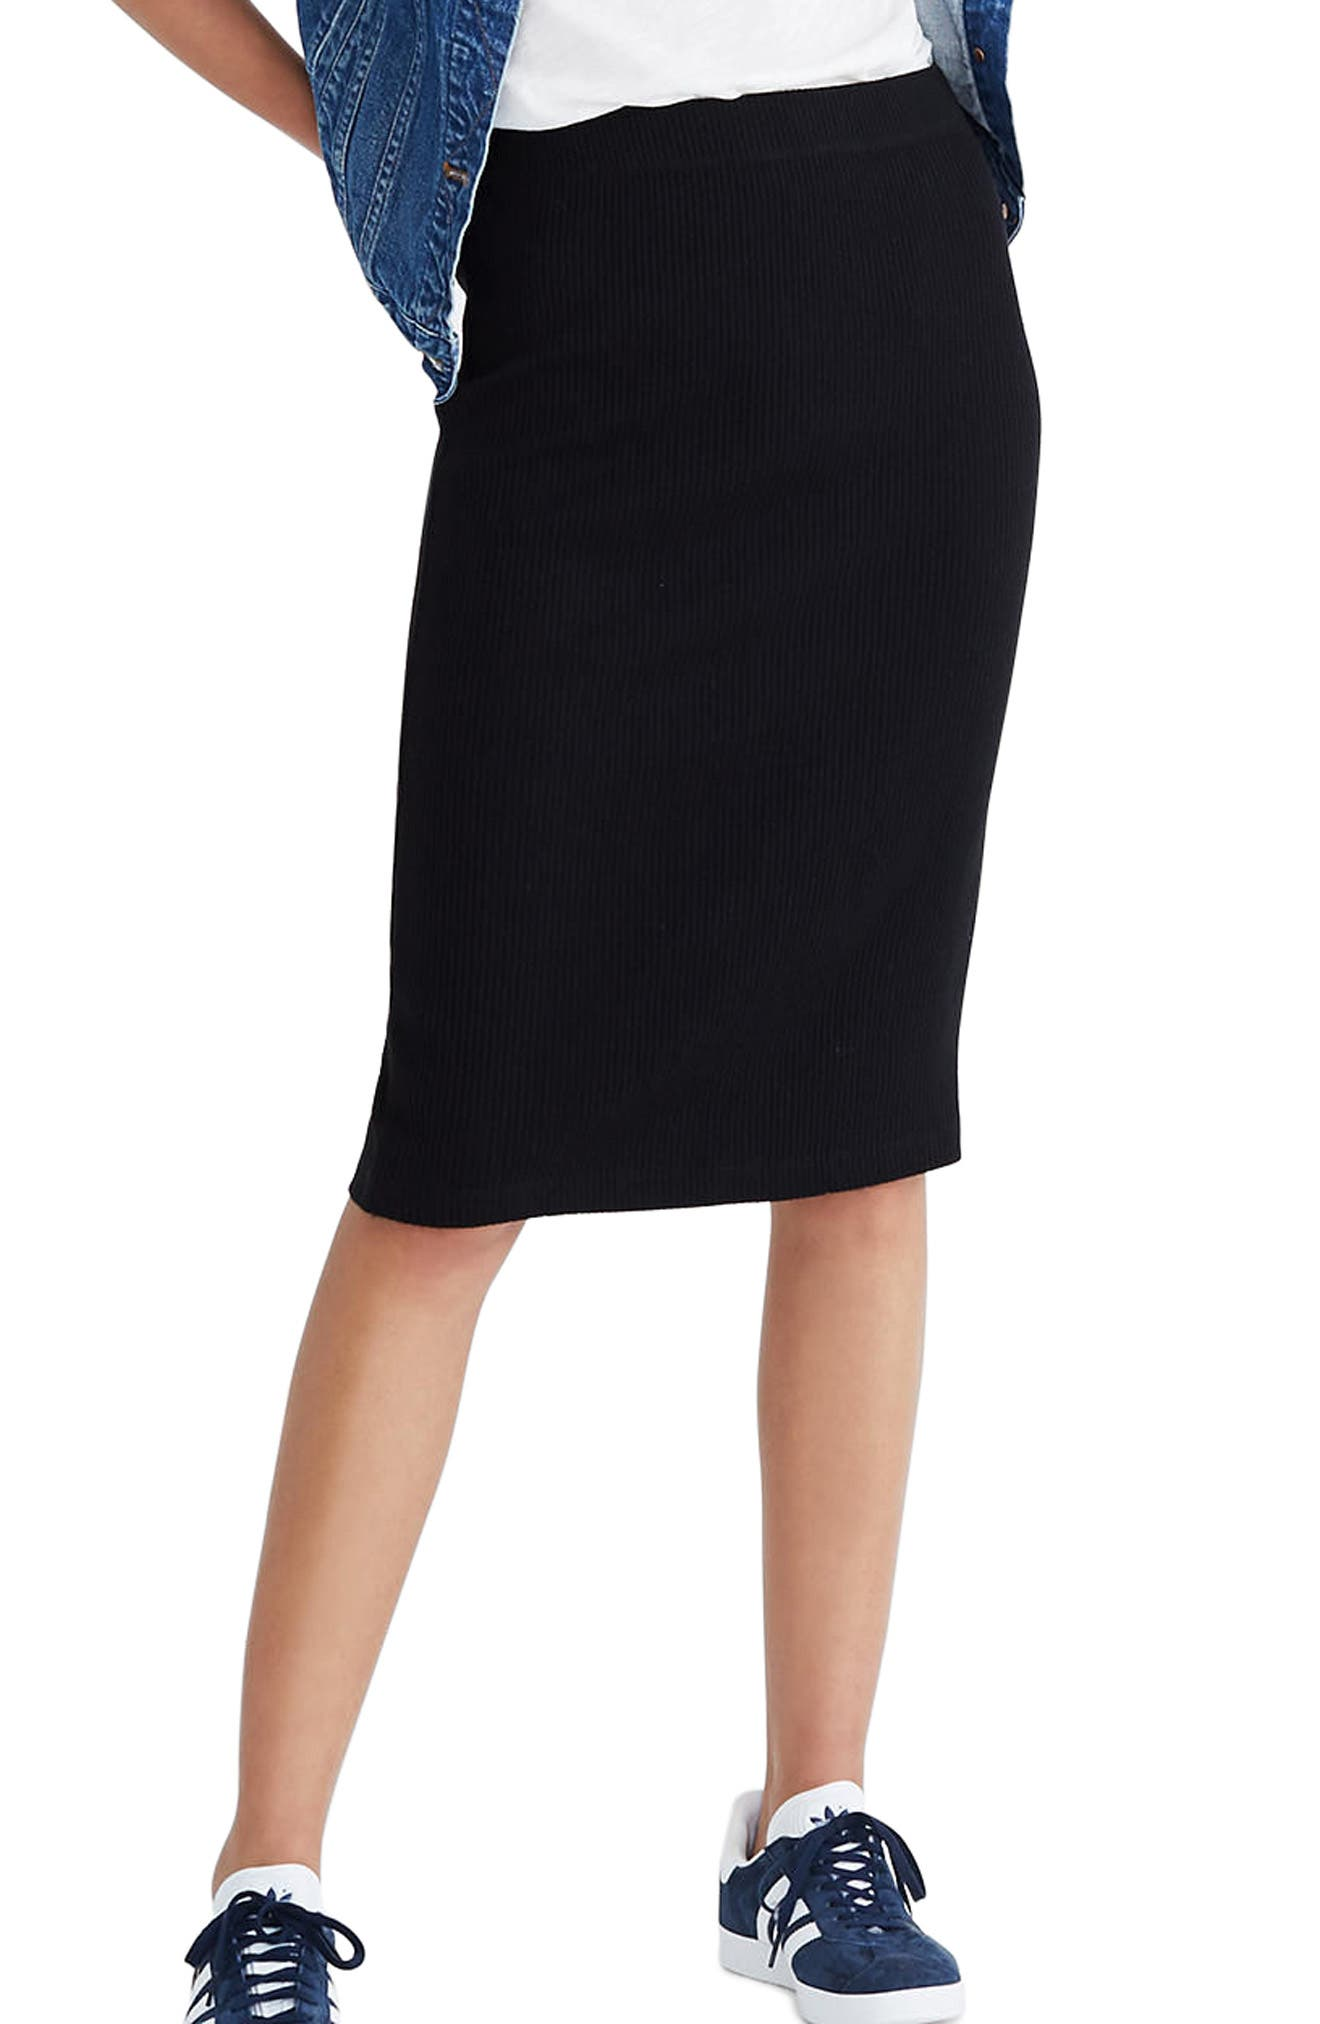 Alternate Image 1 Selected - Madewell Ribbed Pencil Skirt